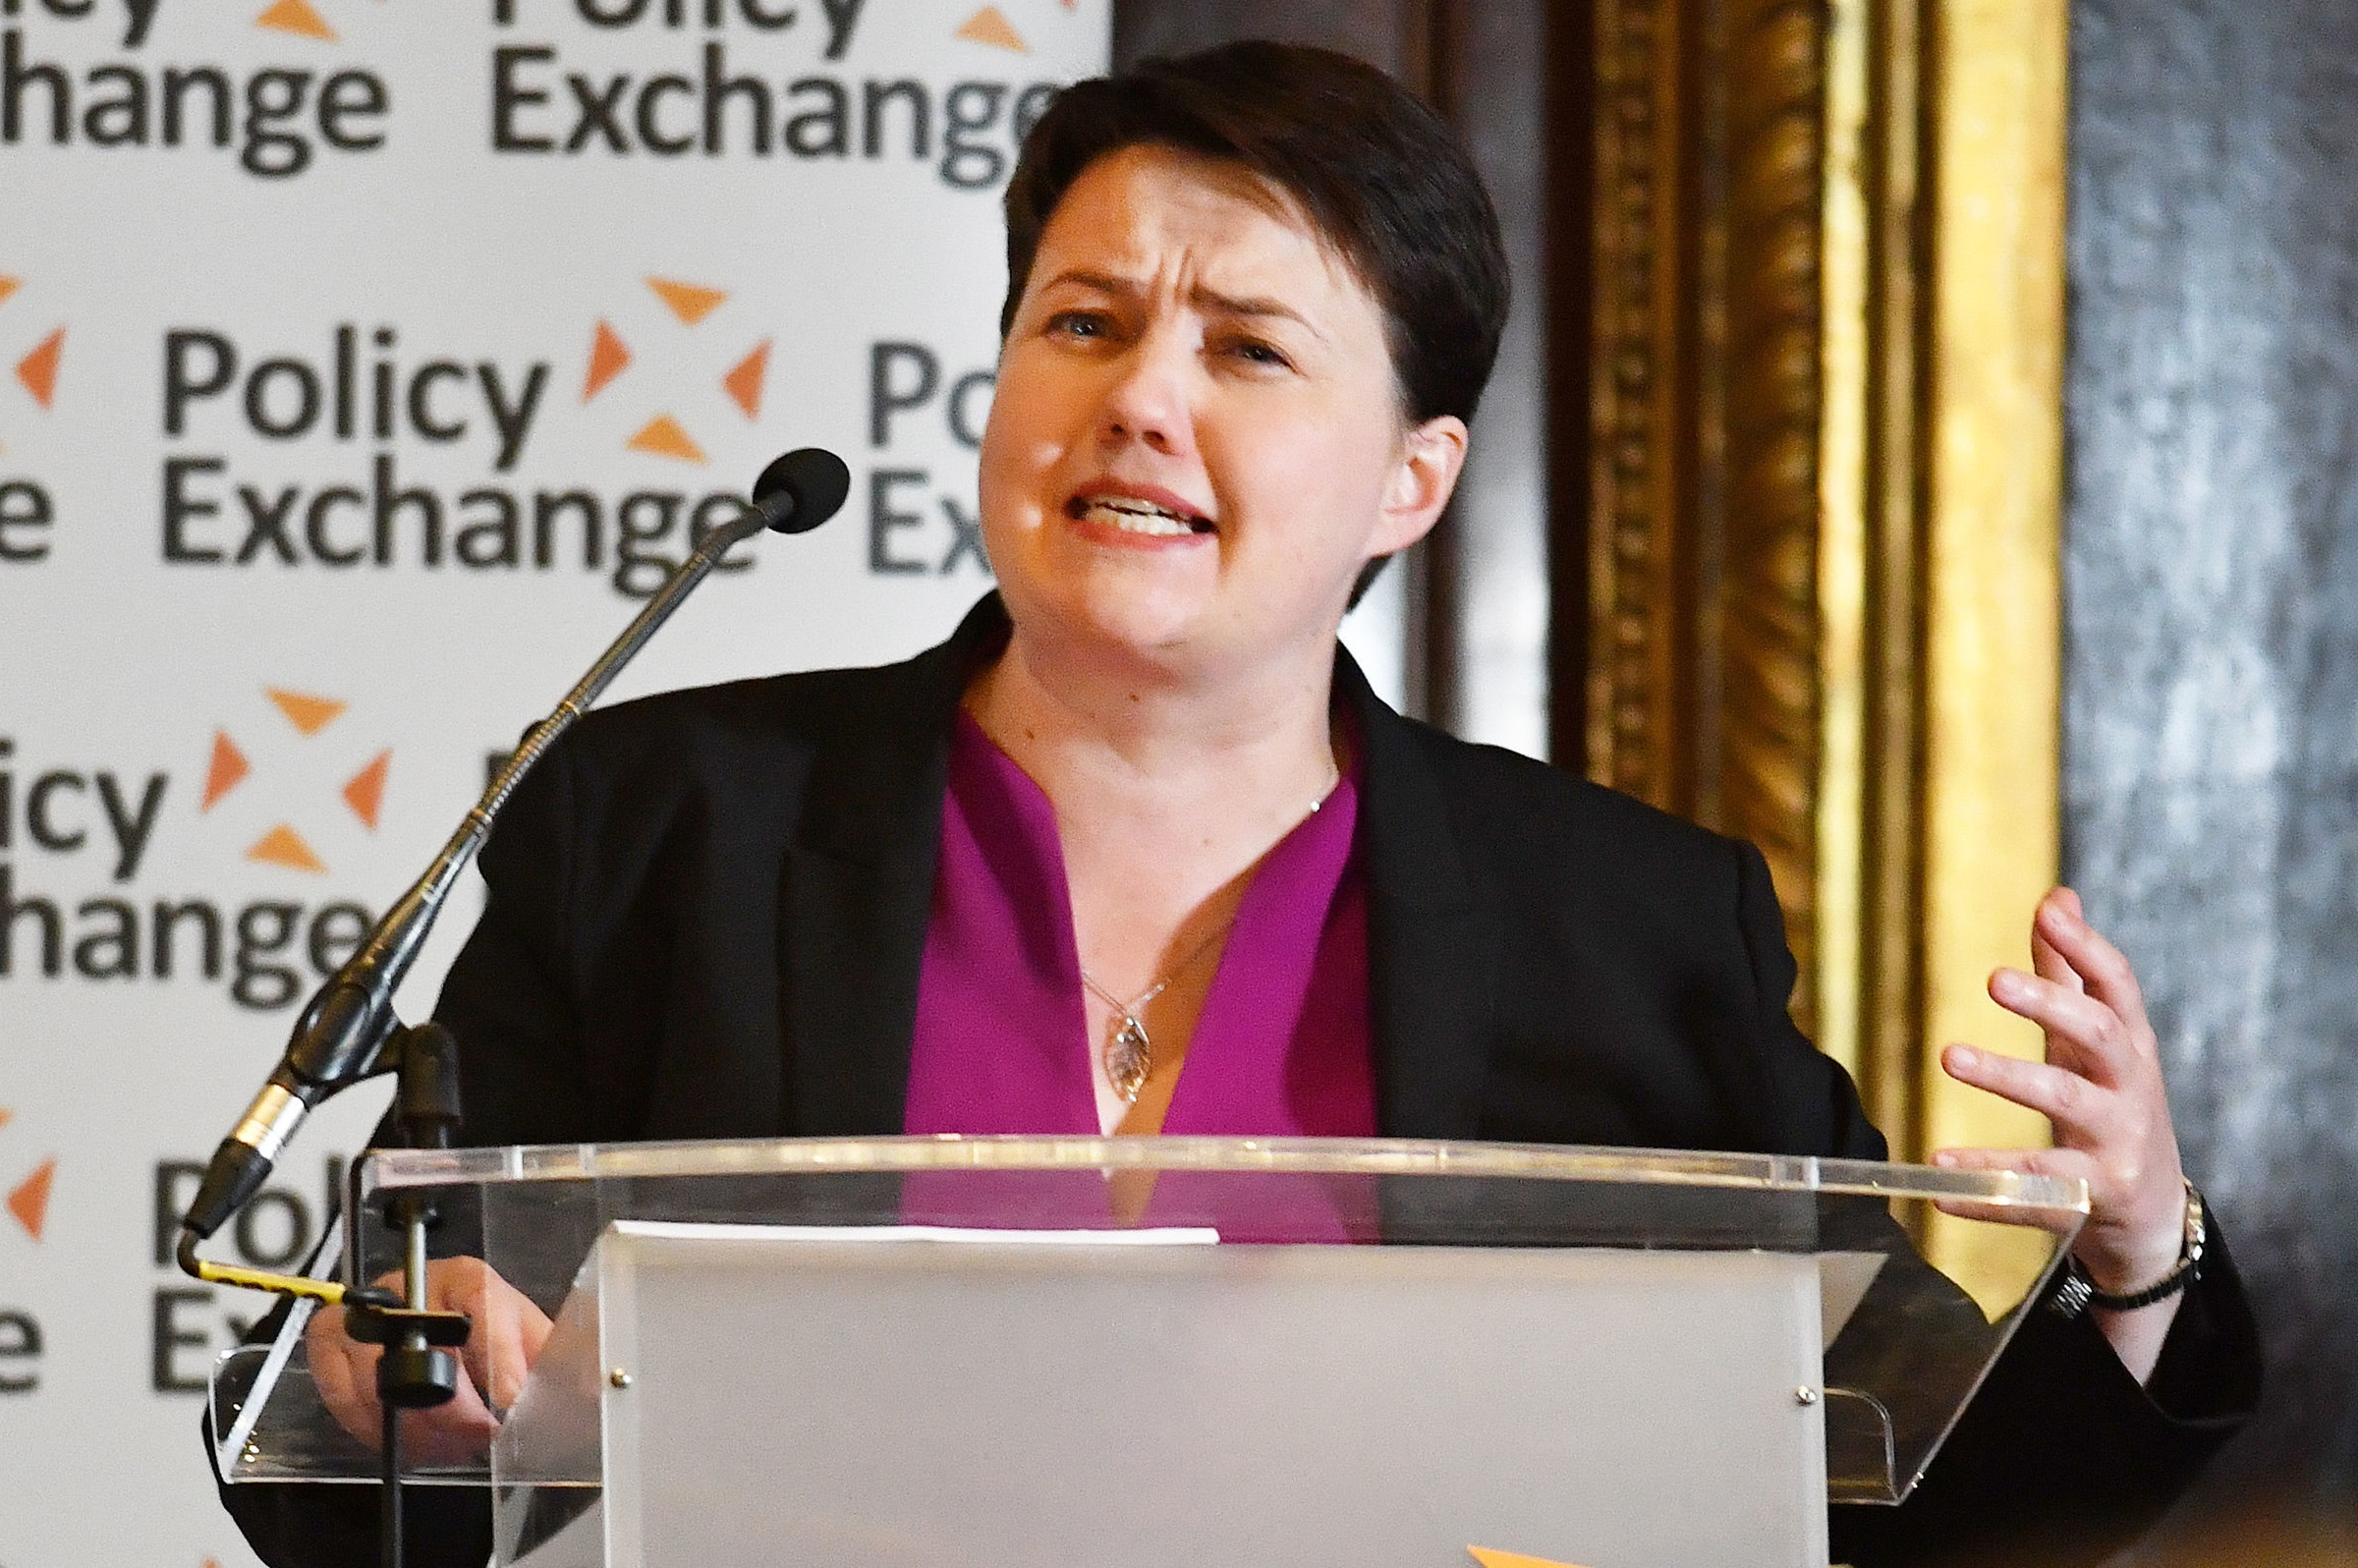 Ruth Davidson was among those taking part in the Policy Exchange event